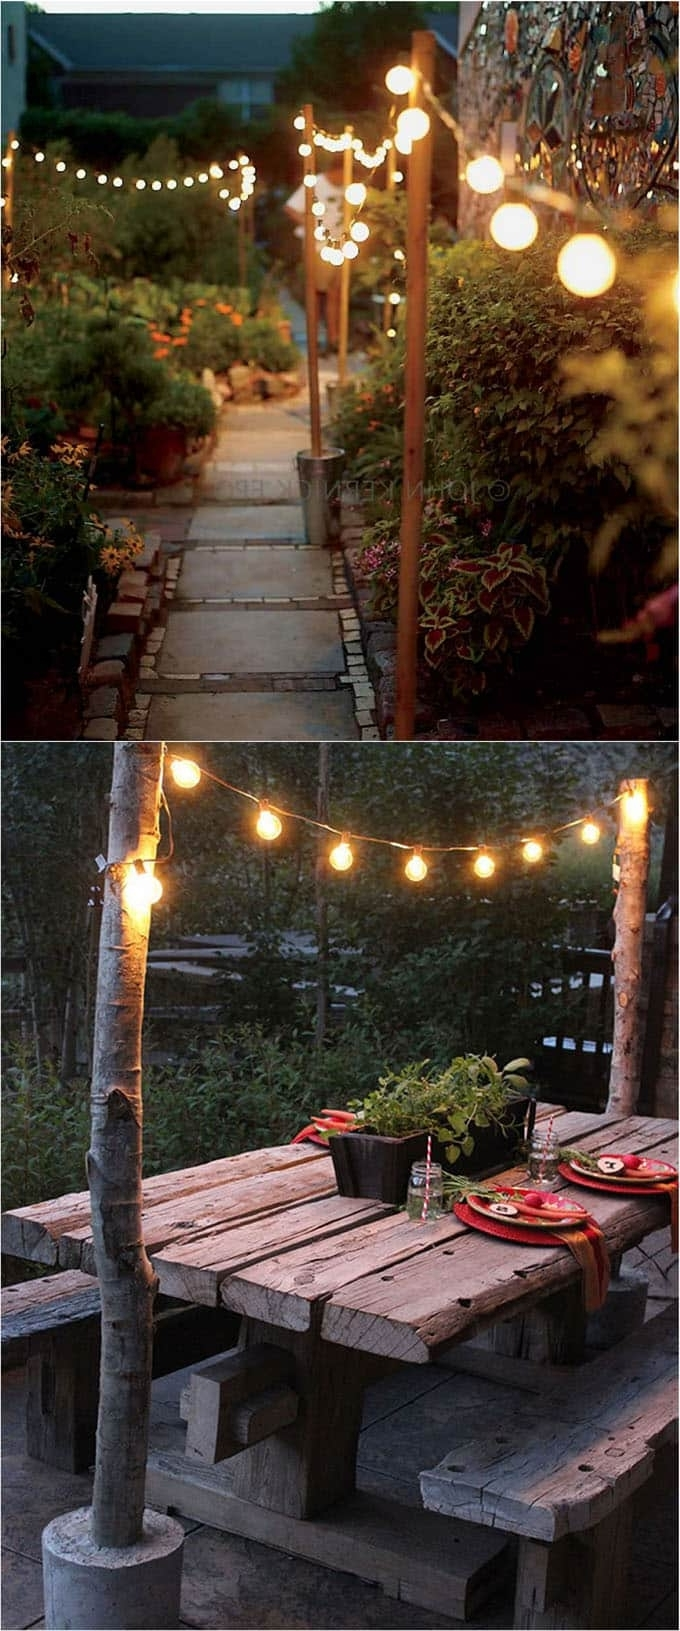 Diy Outdoor Lanterns With Regard To Popular 28 Stunning Diy Outdoor Lighting Ideas ( & So Easy! ) – A Piece Of (Gallery 1 of 20)